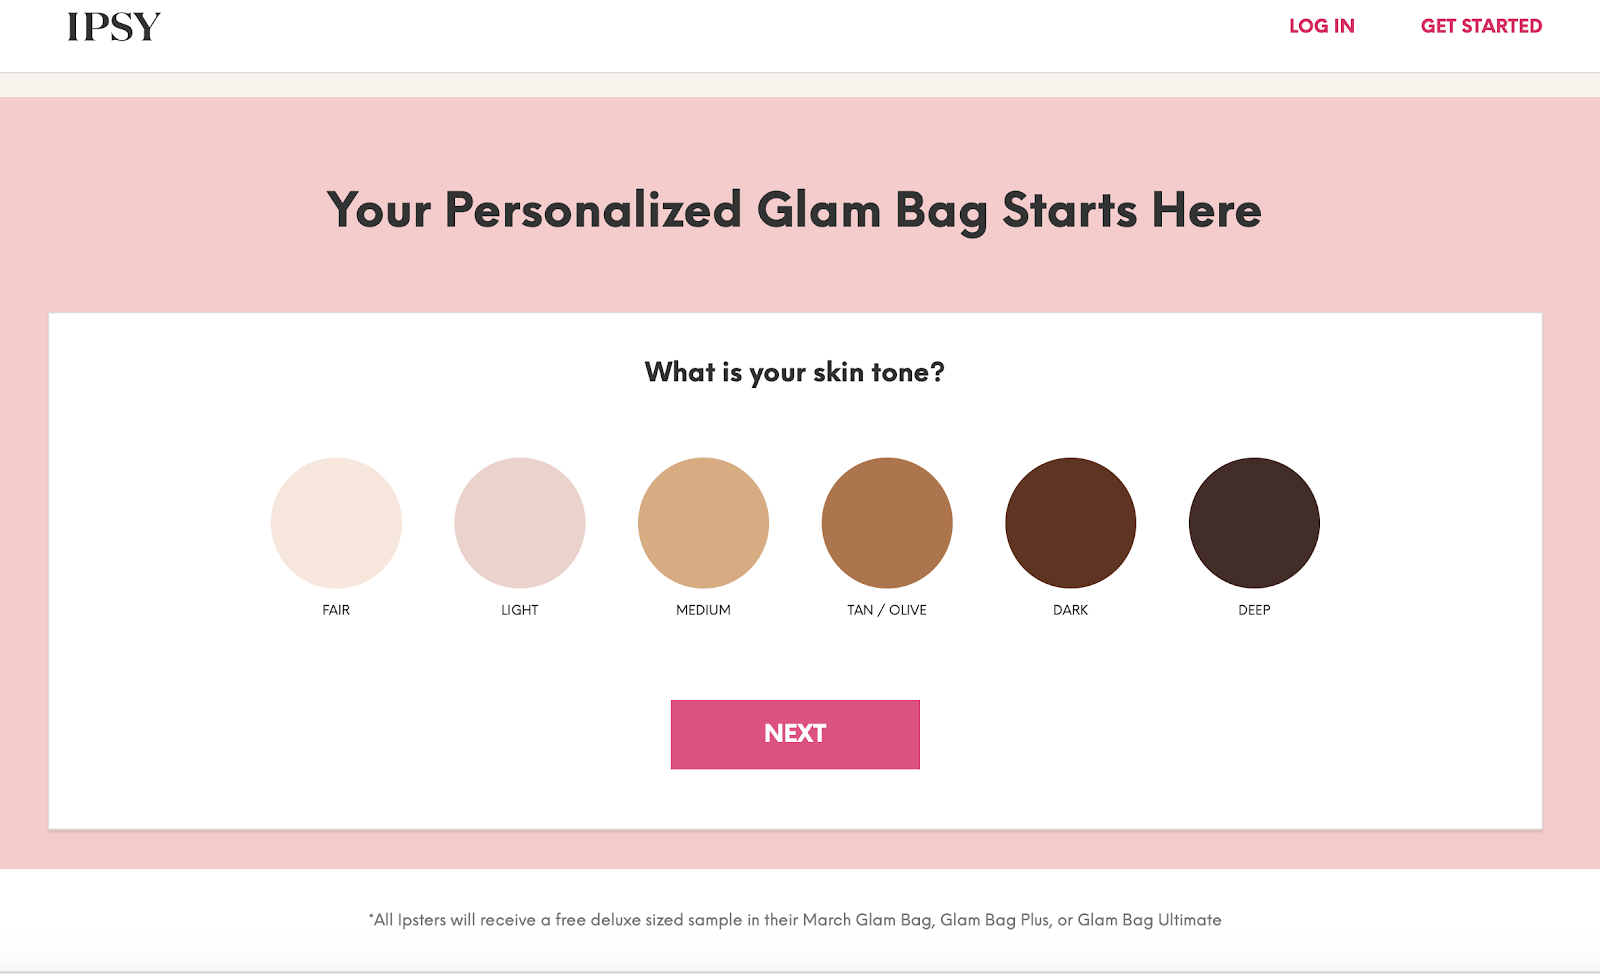 How to order IPSY